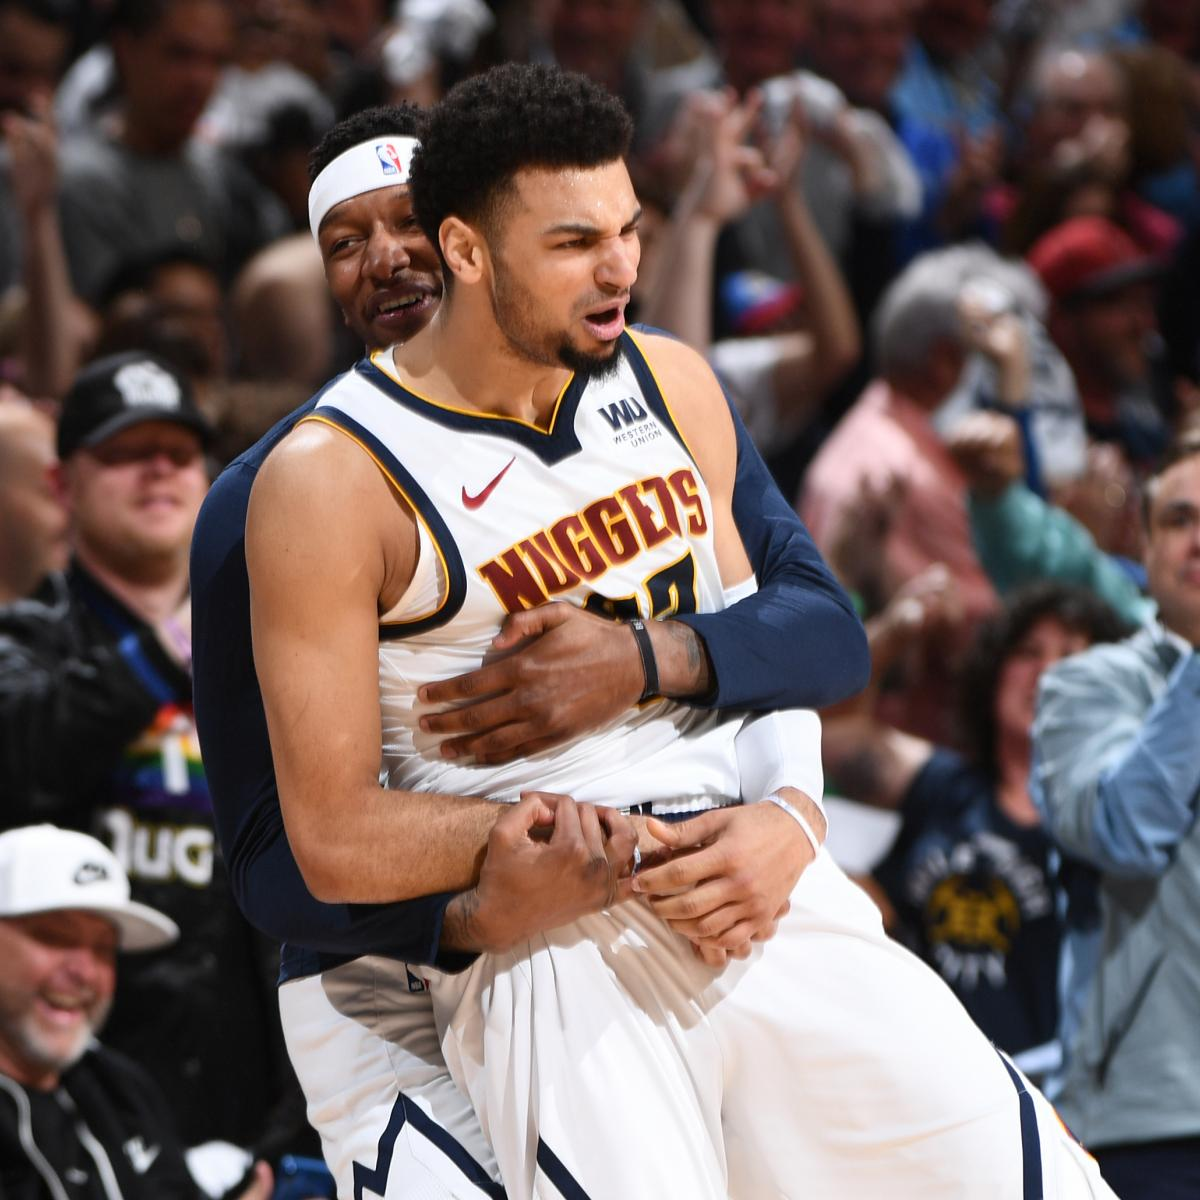 Denver Shooting April 17: 22-Year-Old Jamal Murray's Absurd Game 2 Is Sign Of Future